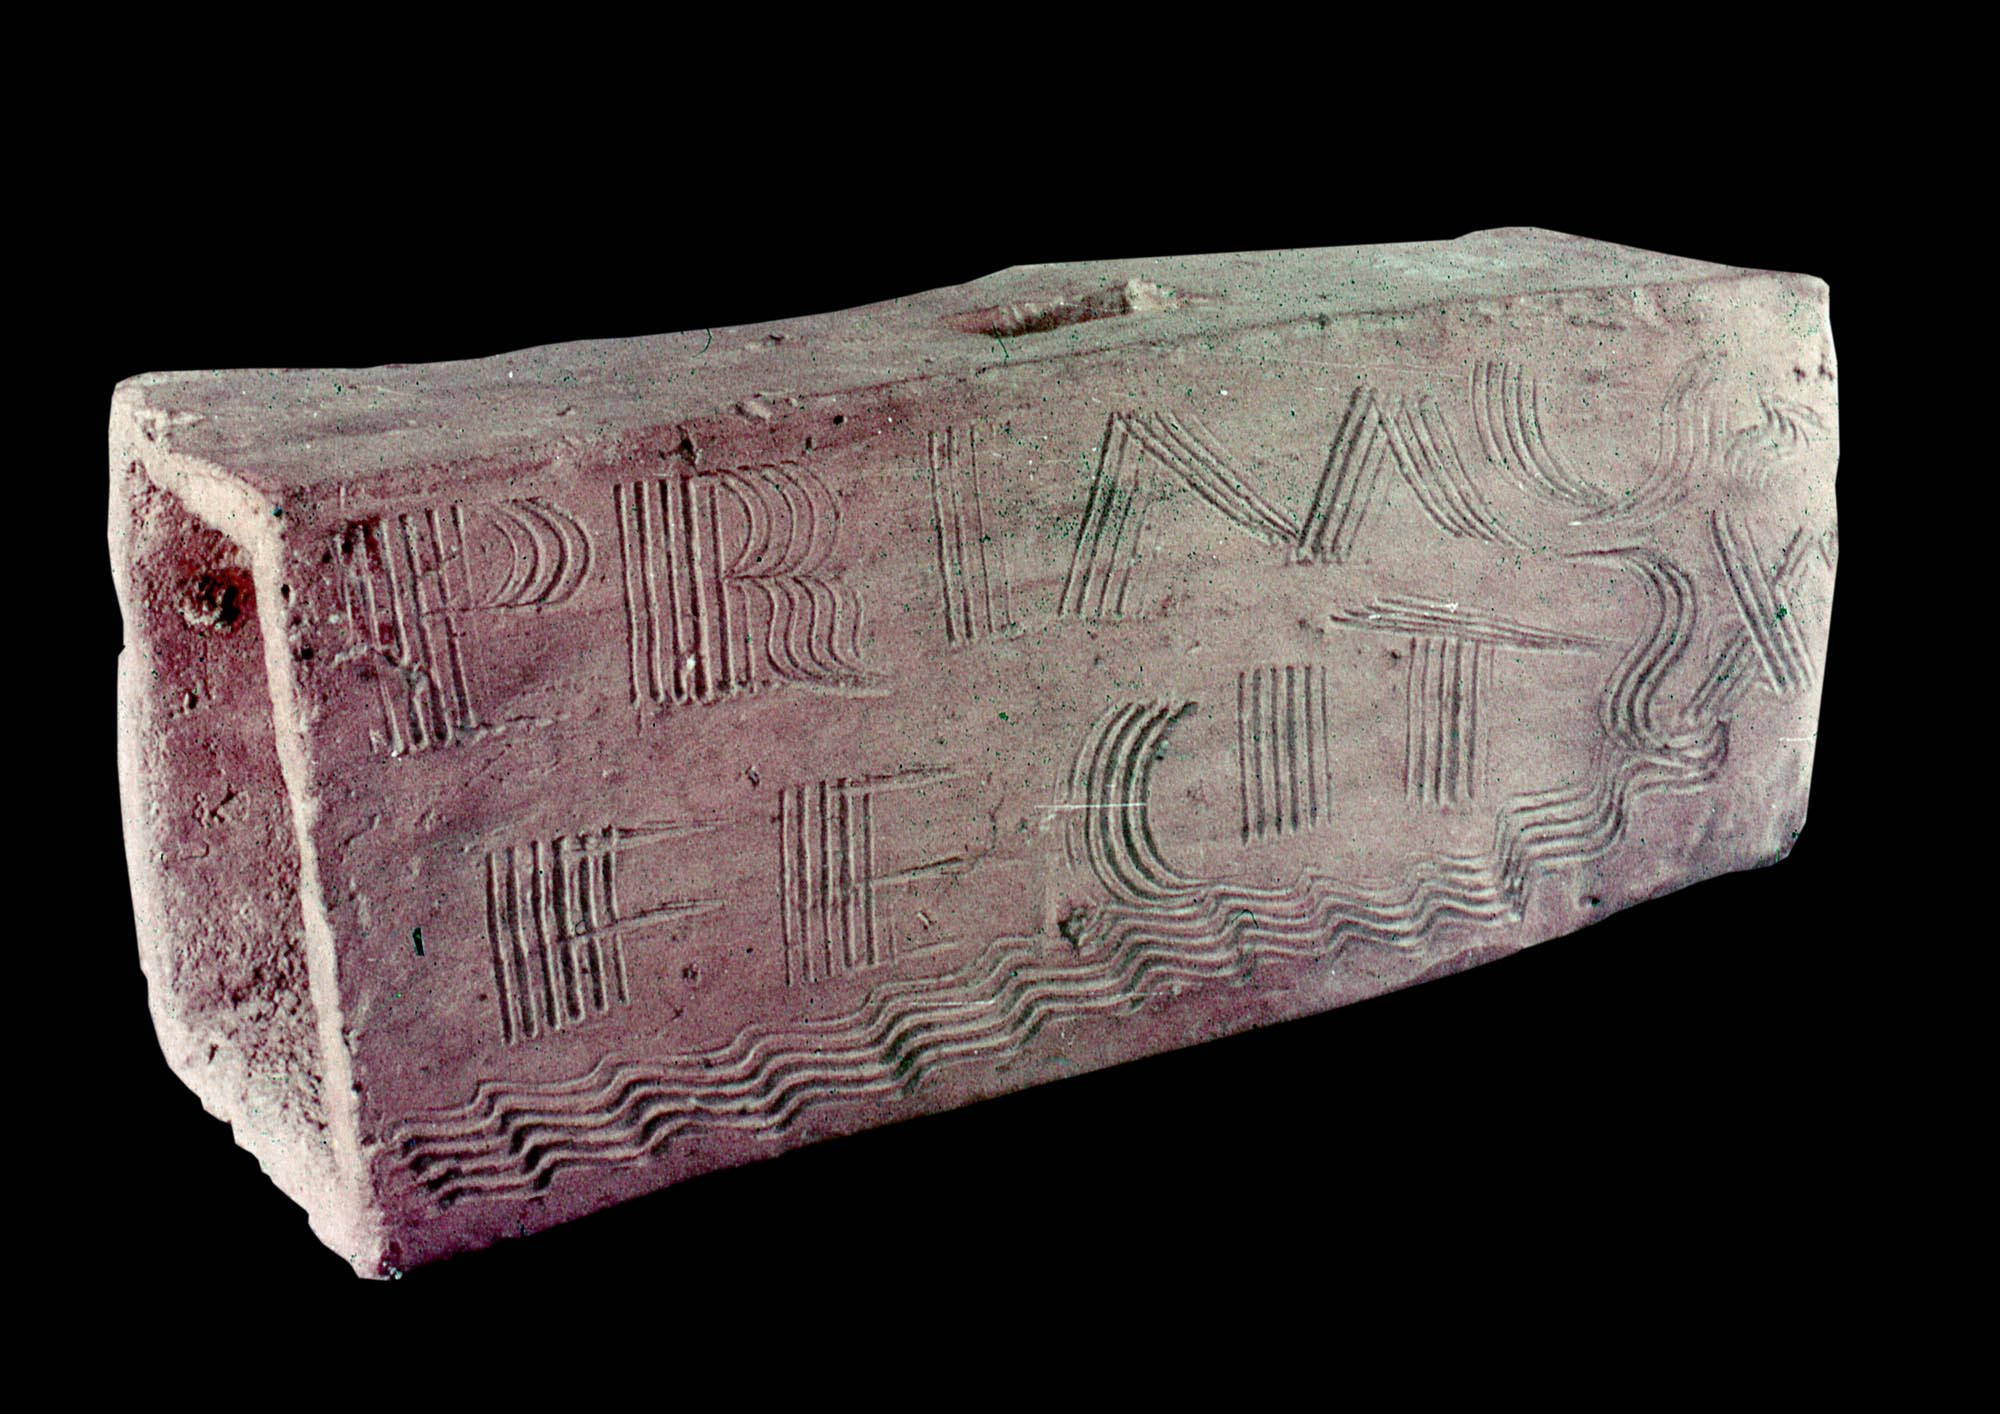 A Roman tile maker from Leicester has written the words PRIMUS FECIT X, meaning 'Primus has made ten tiles', on this box flue before it was fired - Leicester Arts & Museums Service